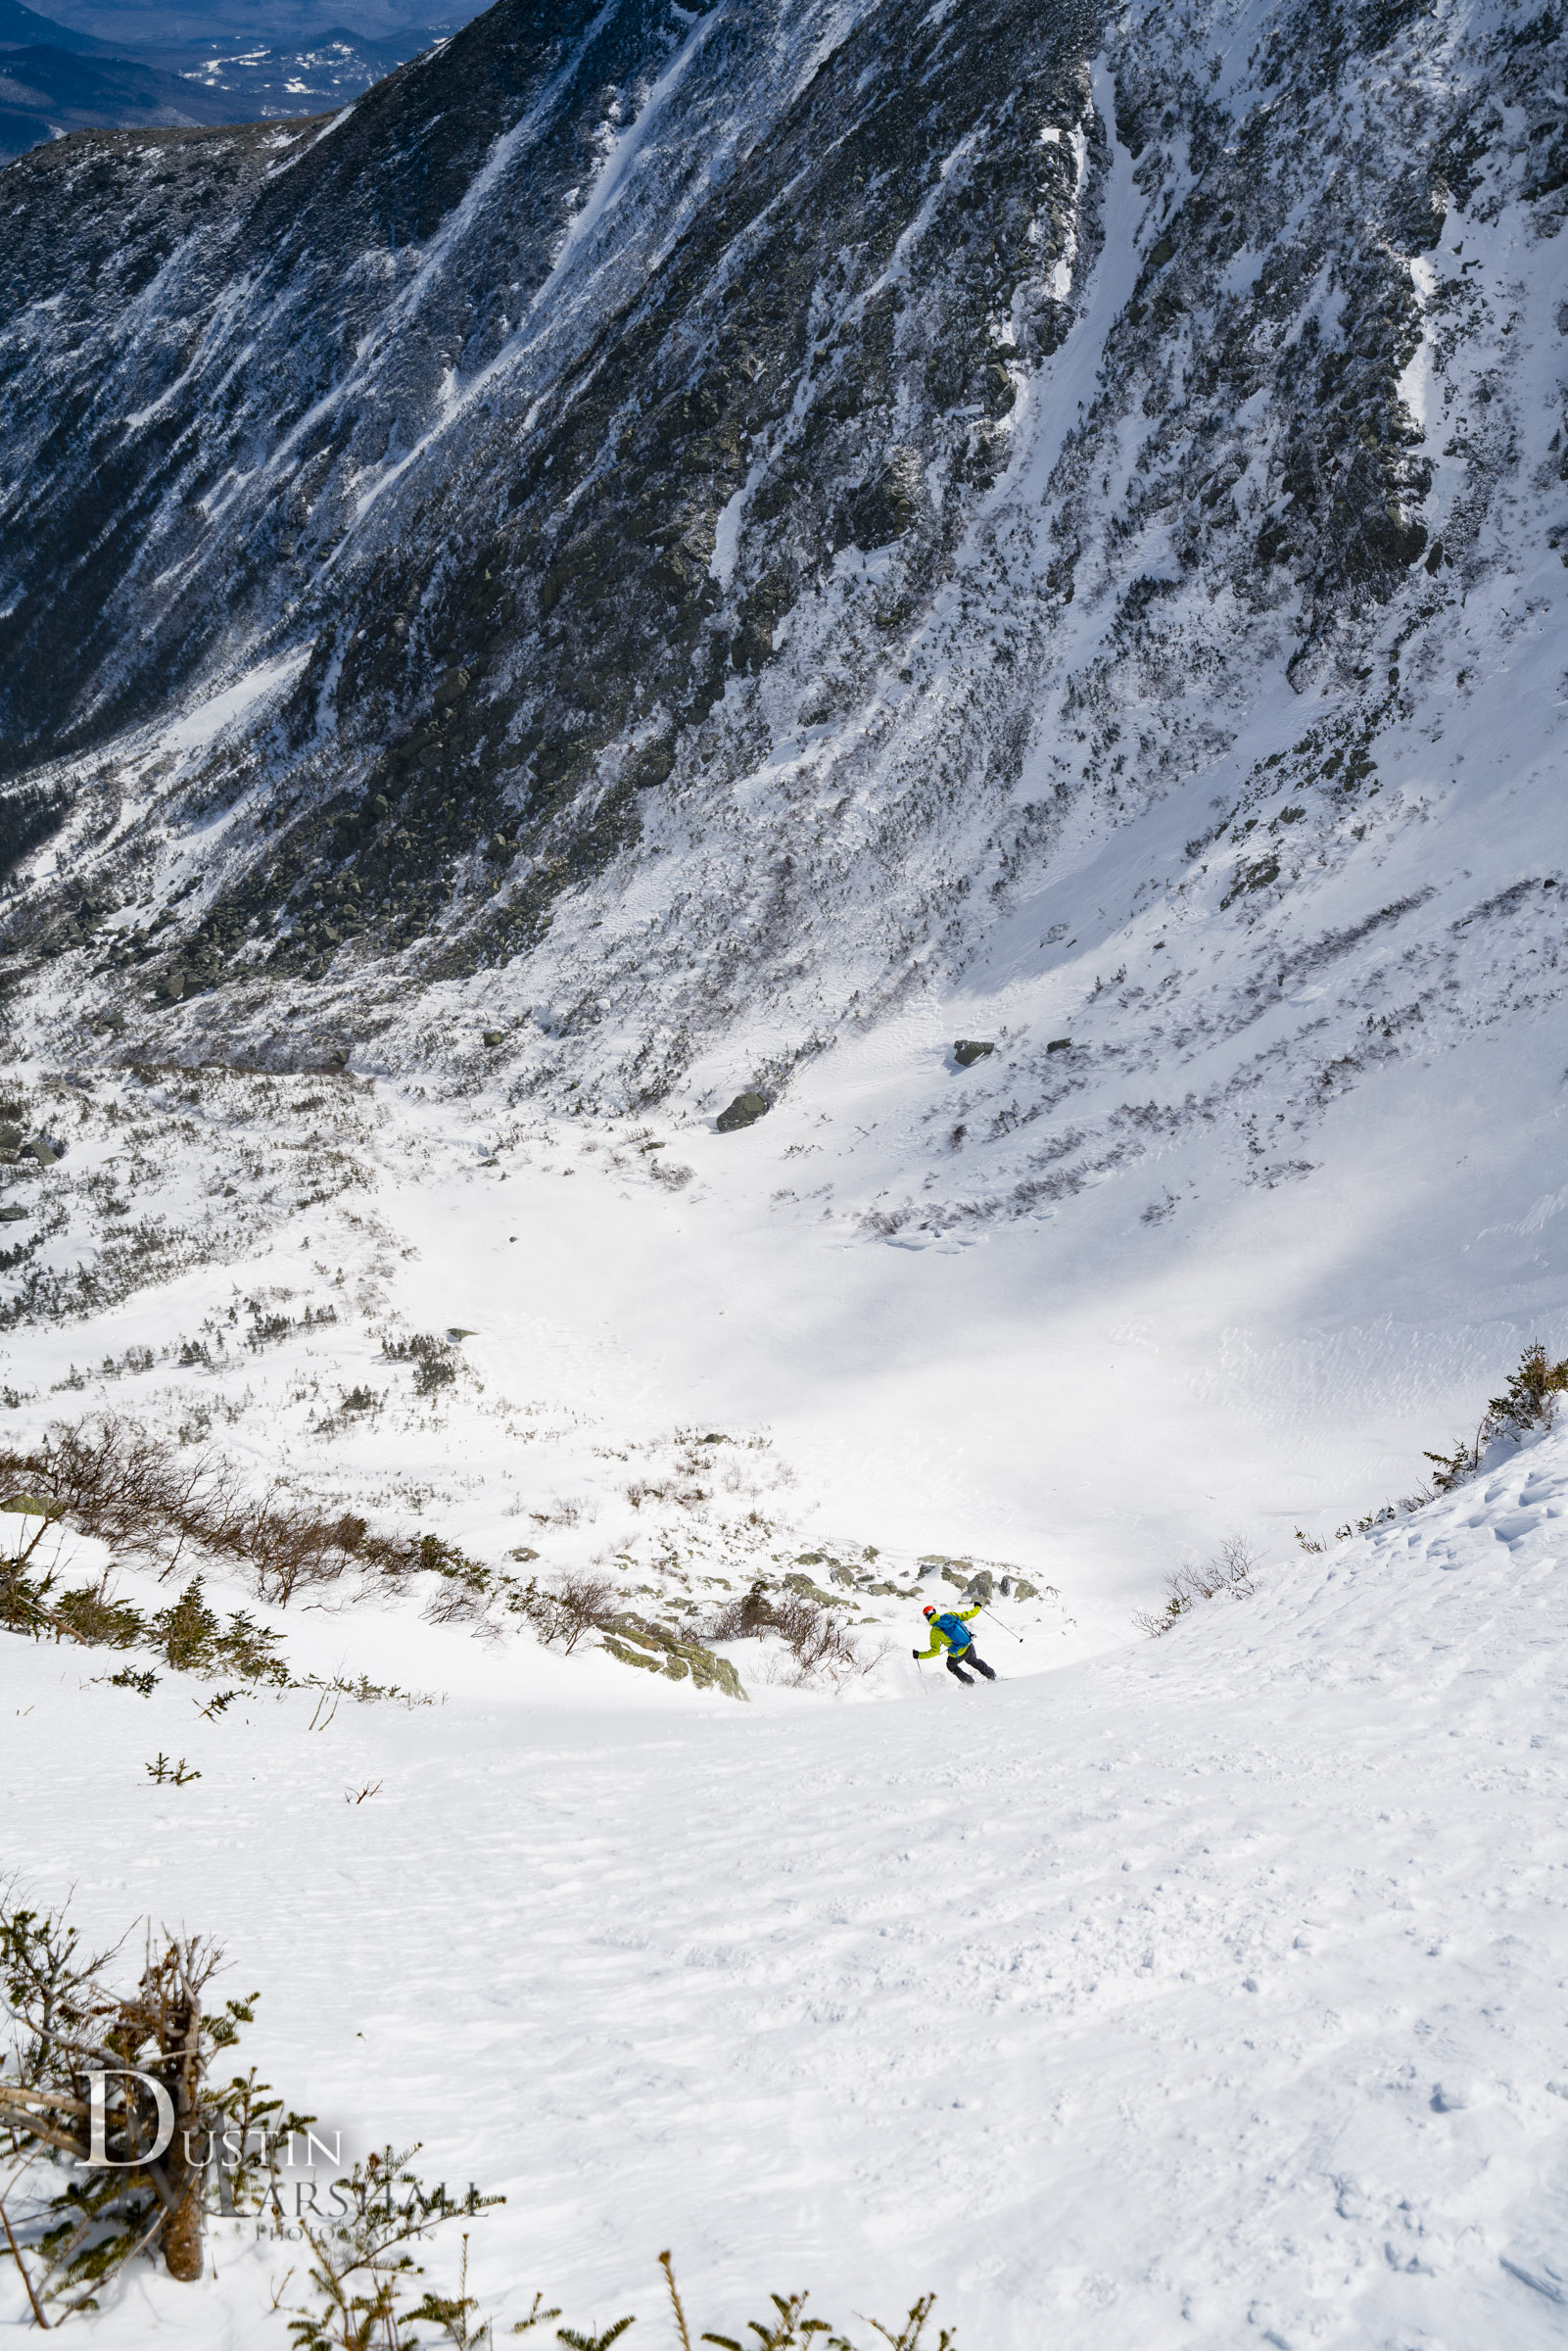 Ever feel small? Tuckerman Ravine skiing